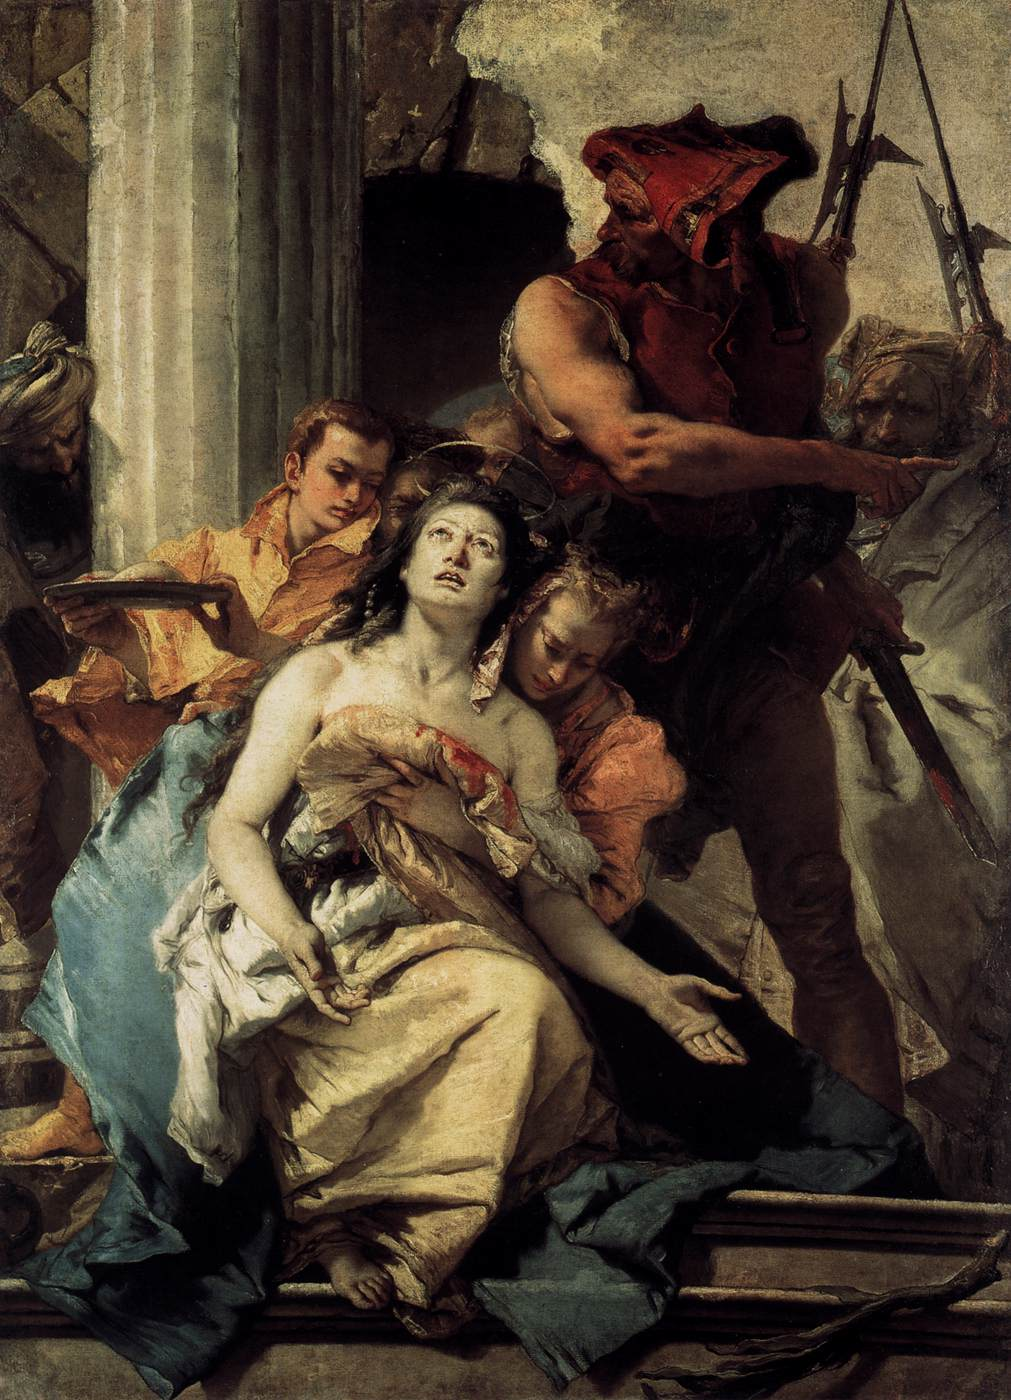 Giovanni_Battista_Tiepolo_-_The_Martyrdom_of_St_Agatha_-_WGA22352